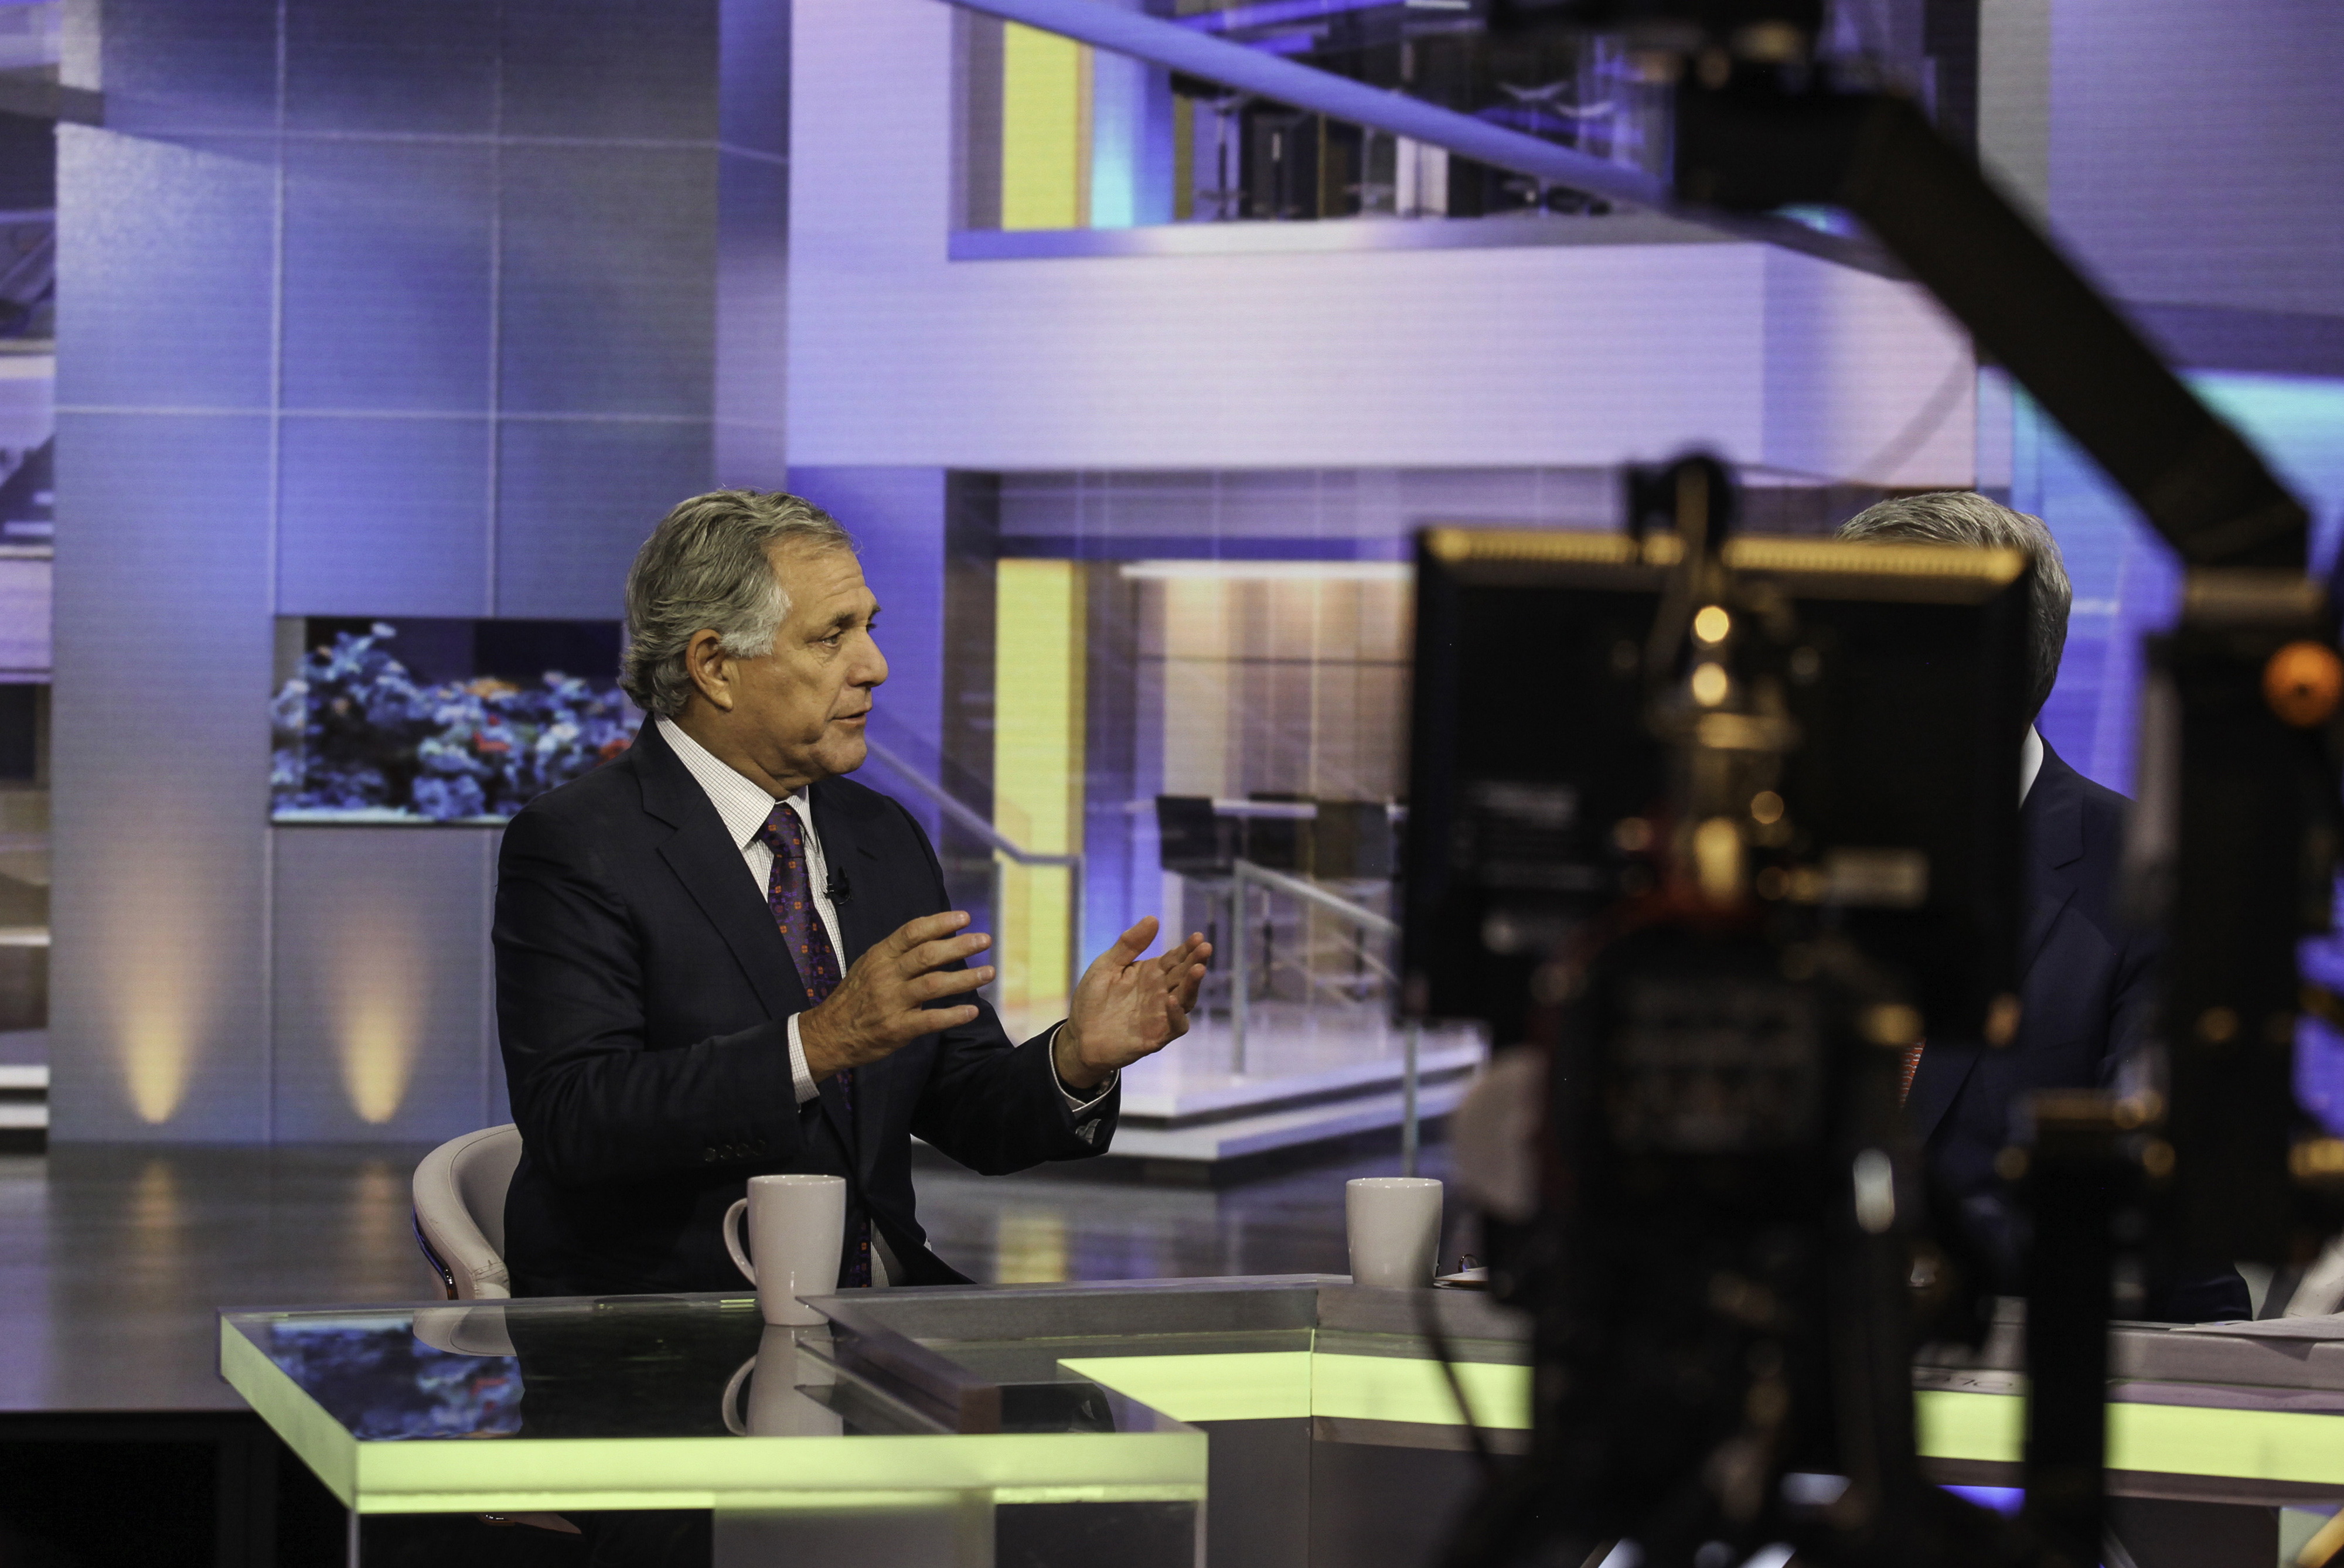 Leslie Roy Moonves, President and Chief Executive Officer of CBS Corporation, speaks during a Bloomberg television interview in New York, U.S., on Wednesday, October. 14, 2015